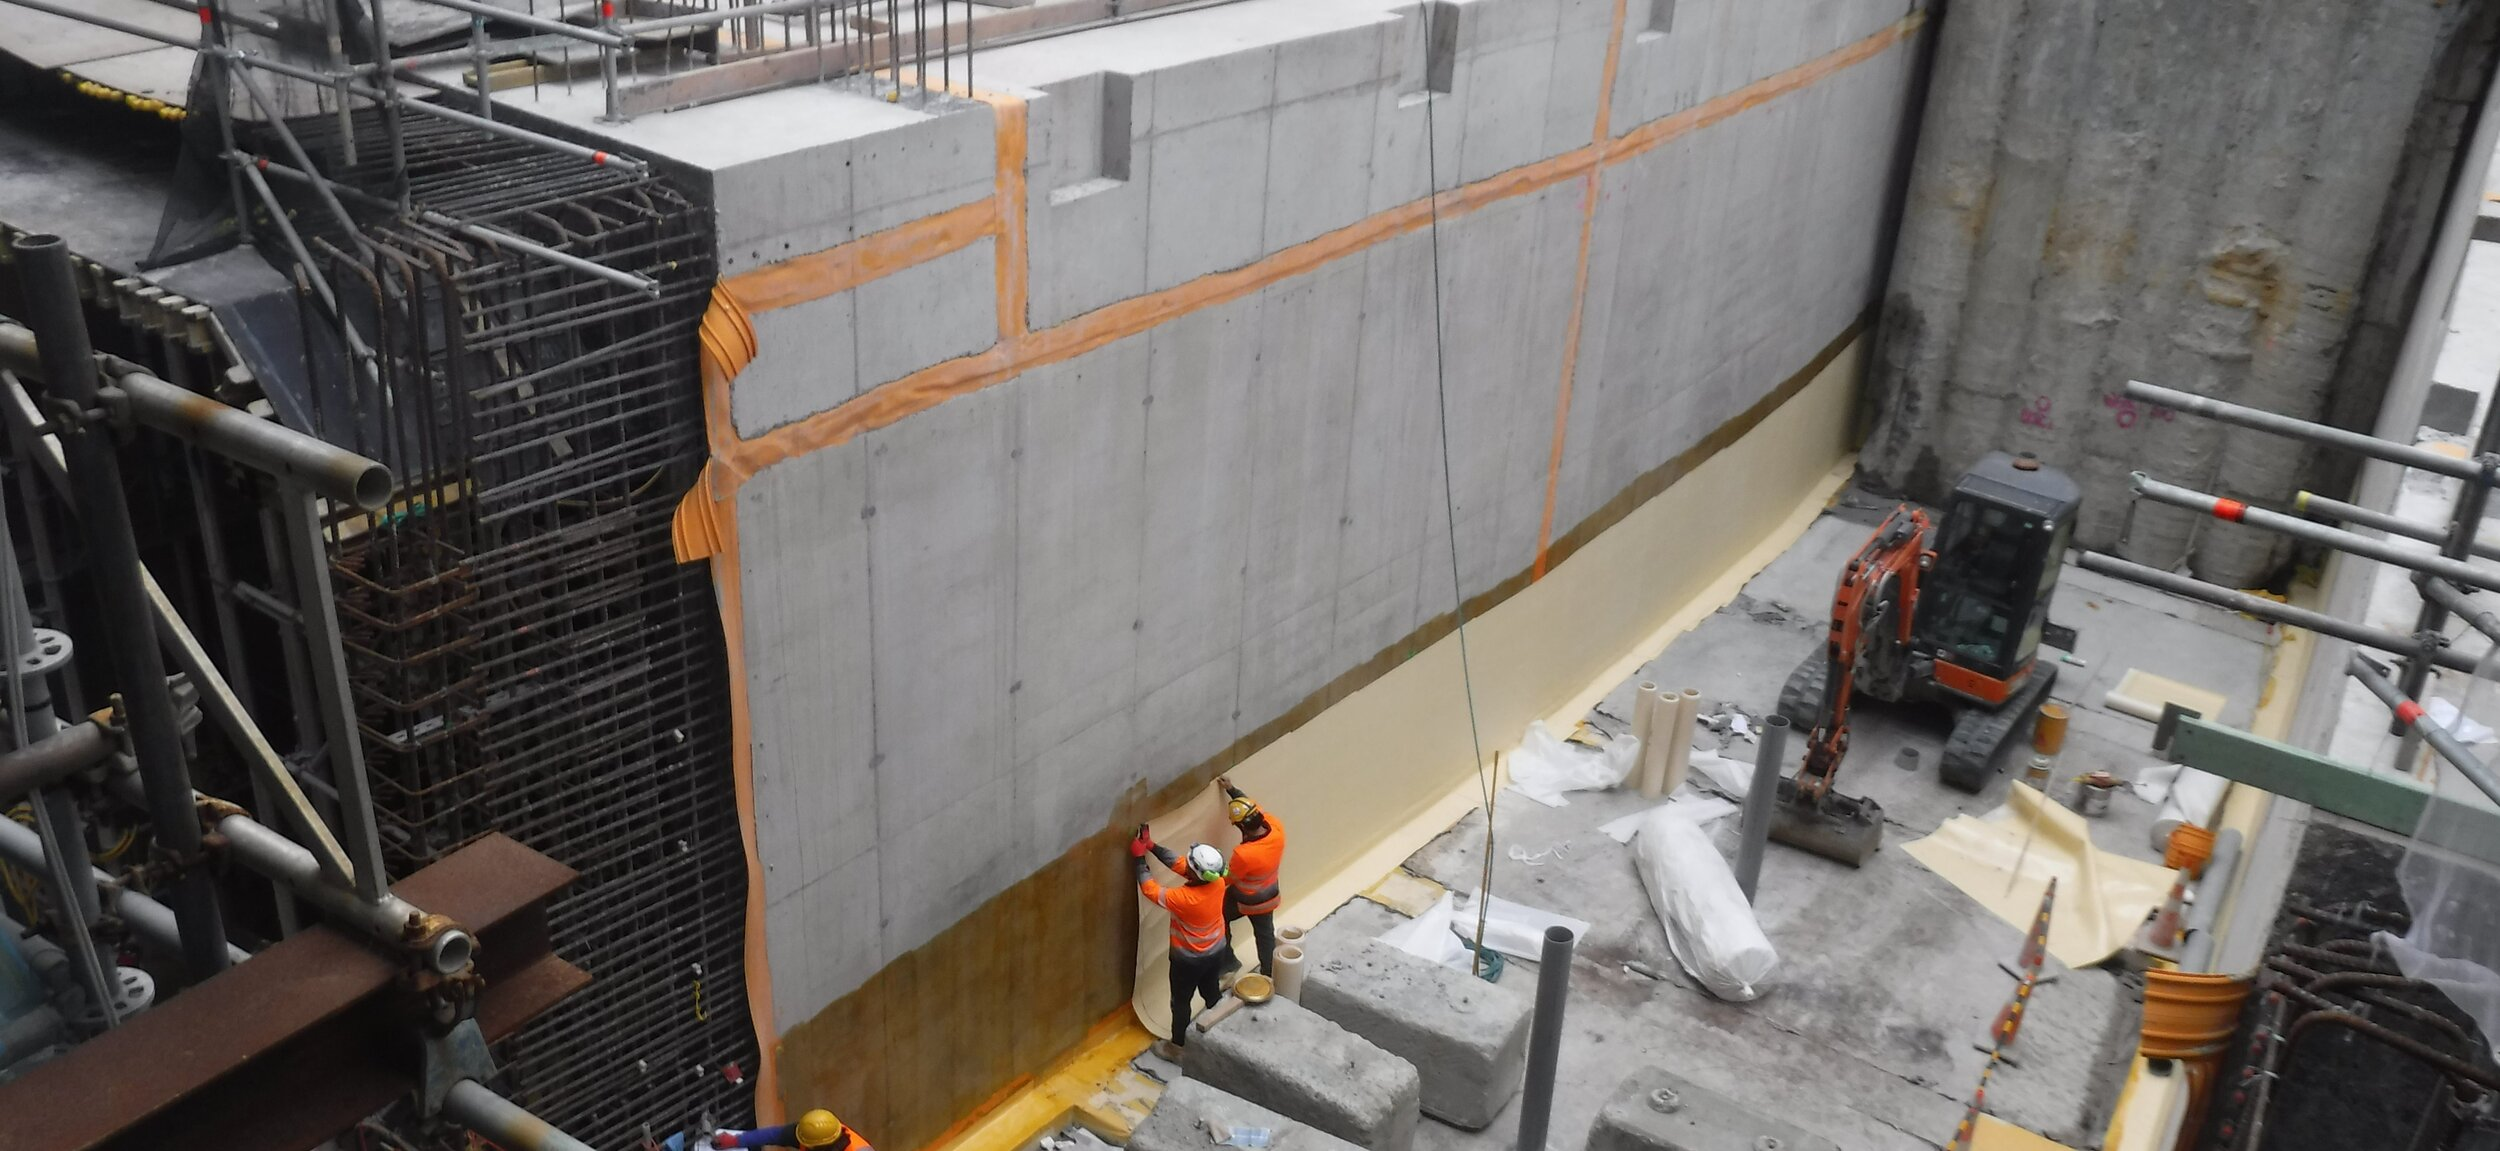 TUNNEL: Workers apply waterproof membrane to one of the tunnel walls built in front of the Chief Post Office in lower Queen Street